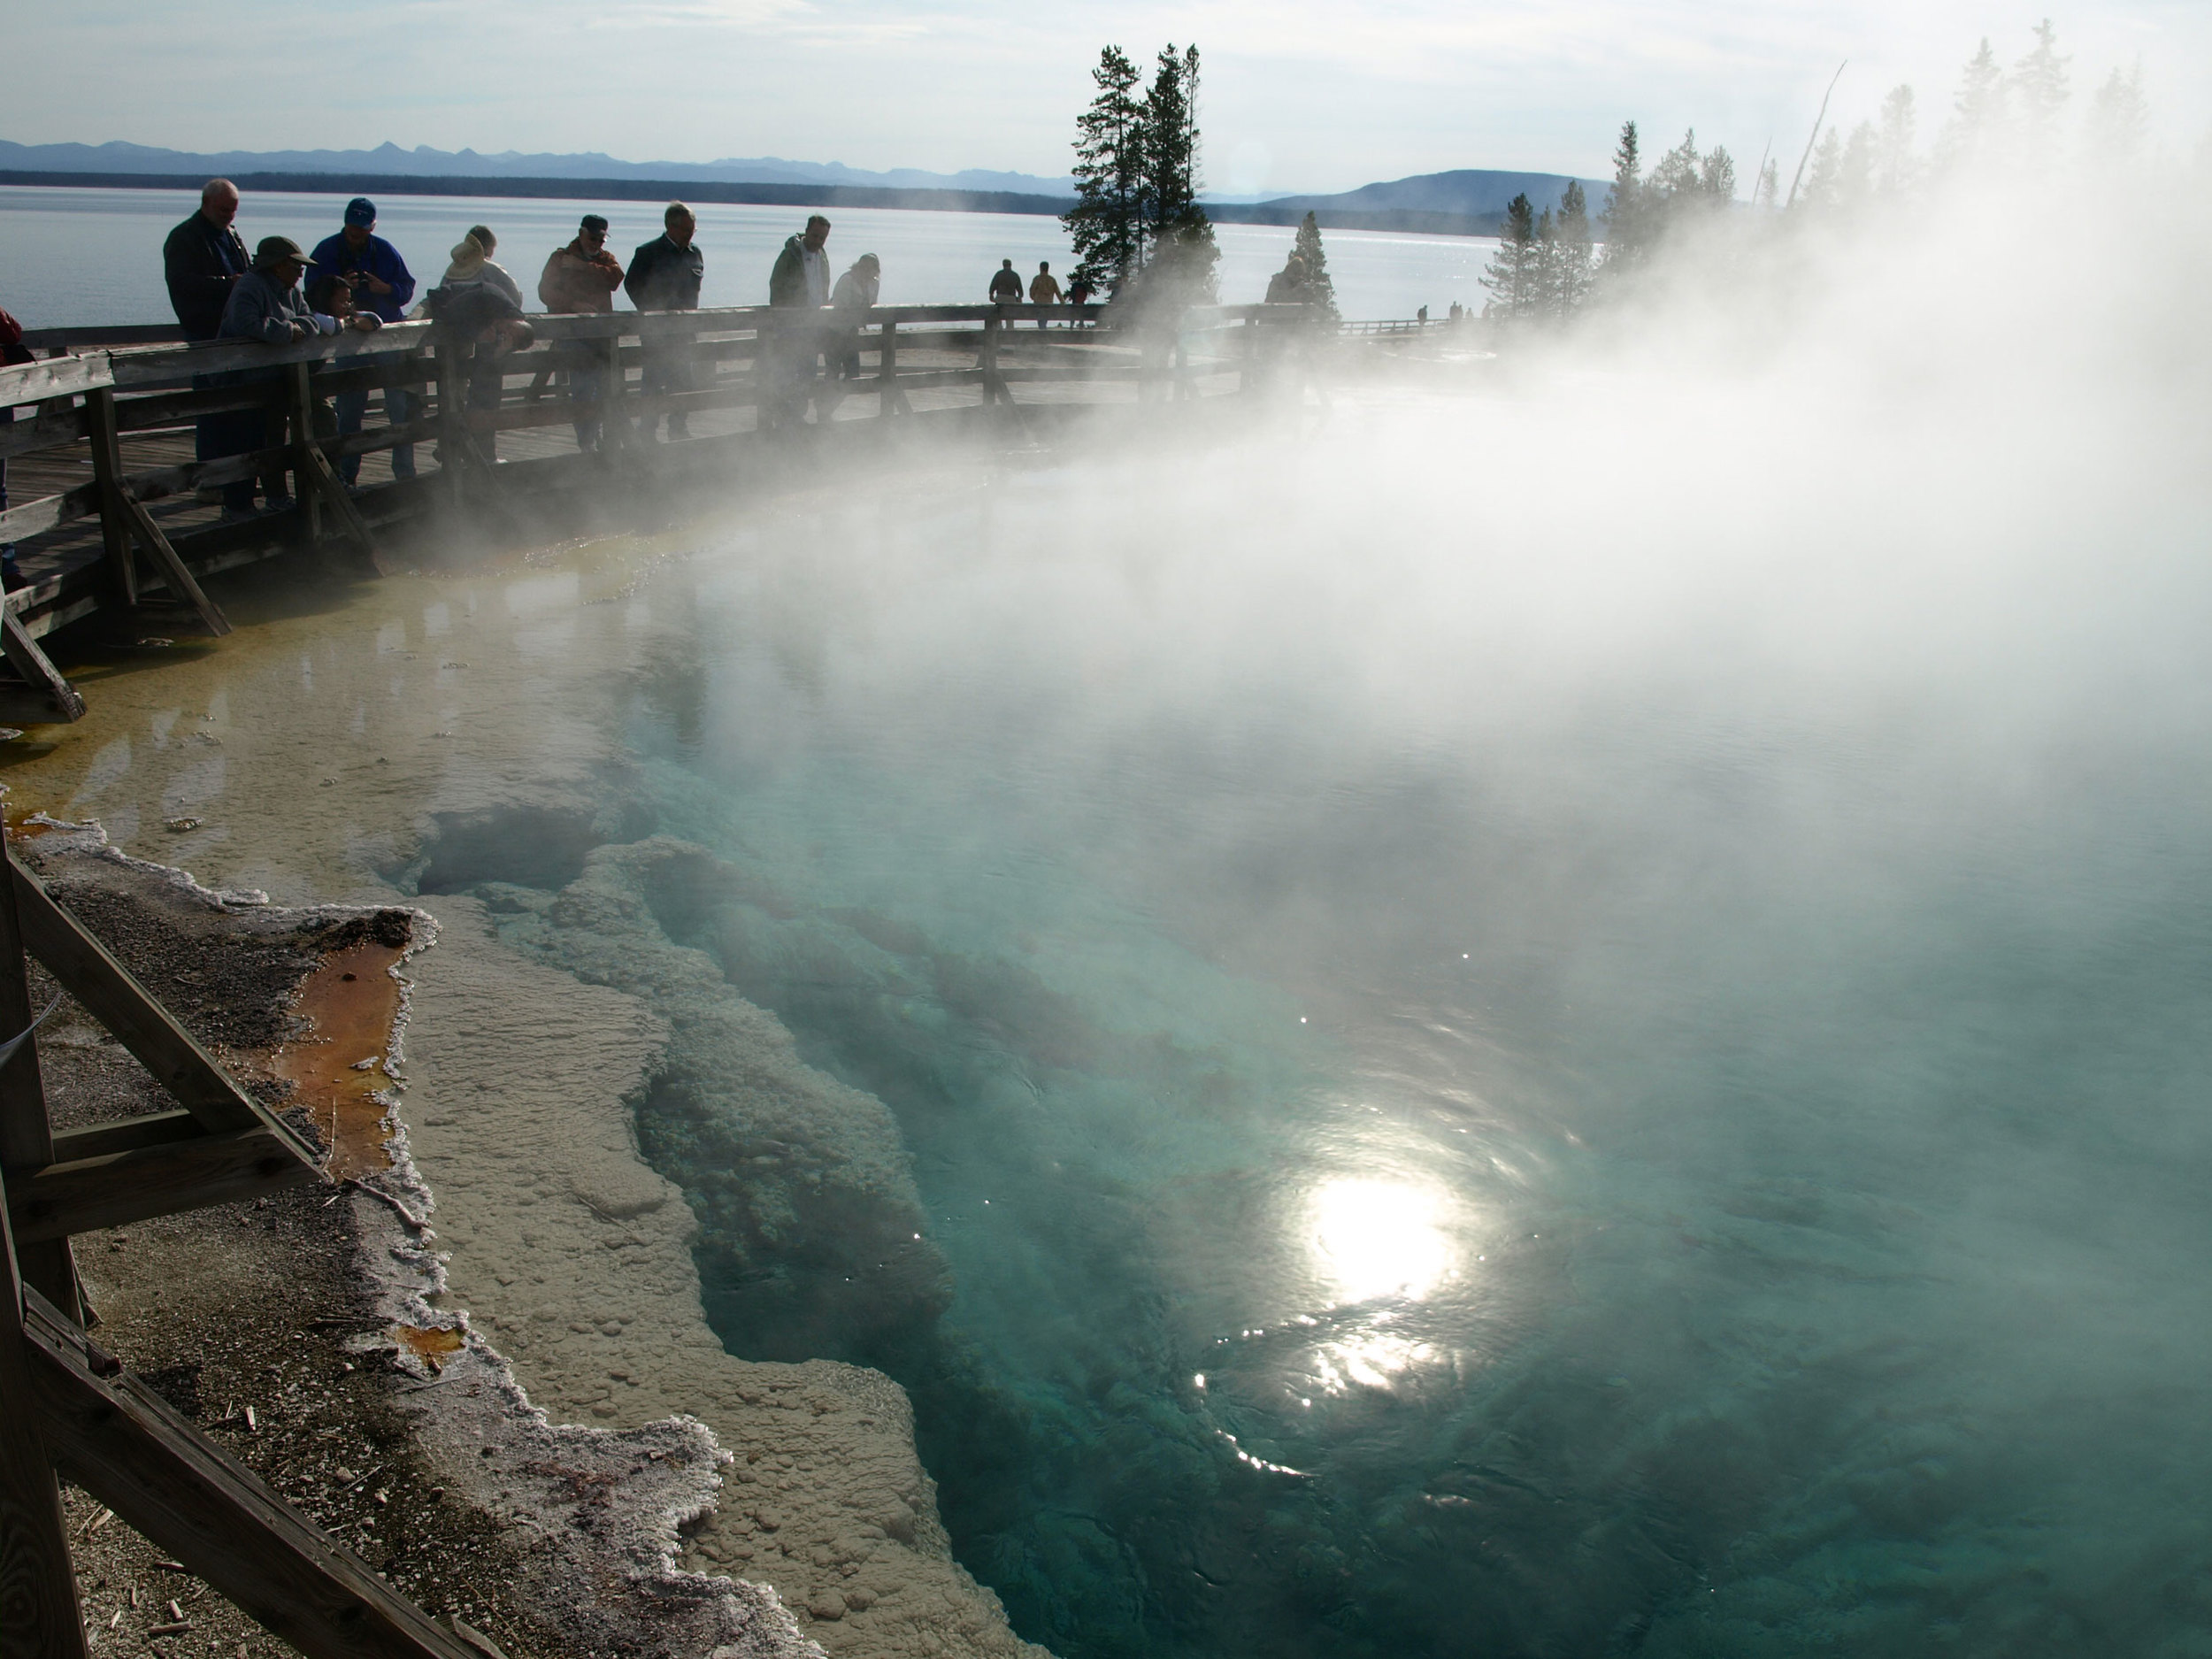 ThermalPool-Yellowstone-566k.jpg